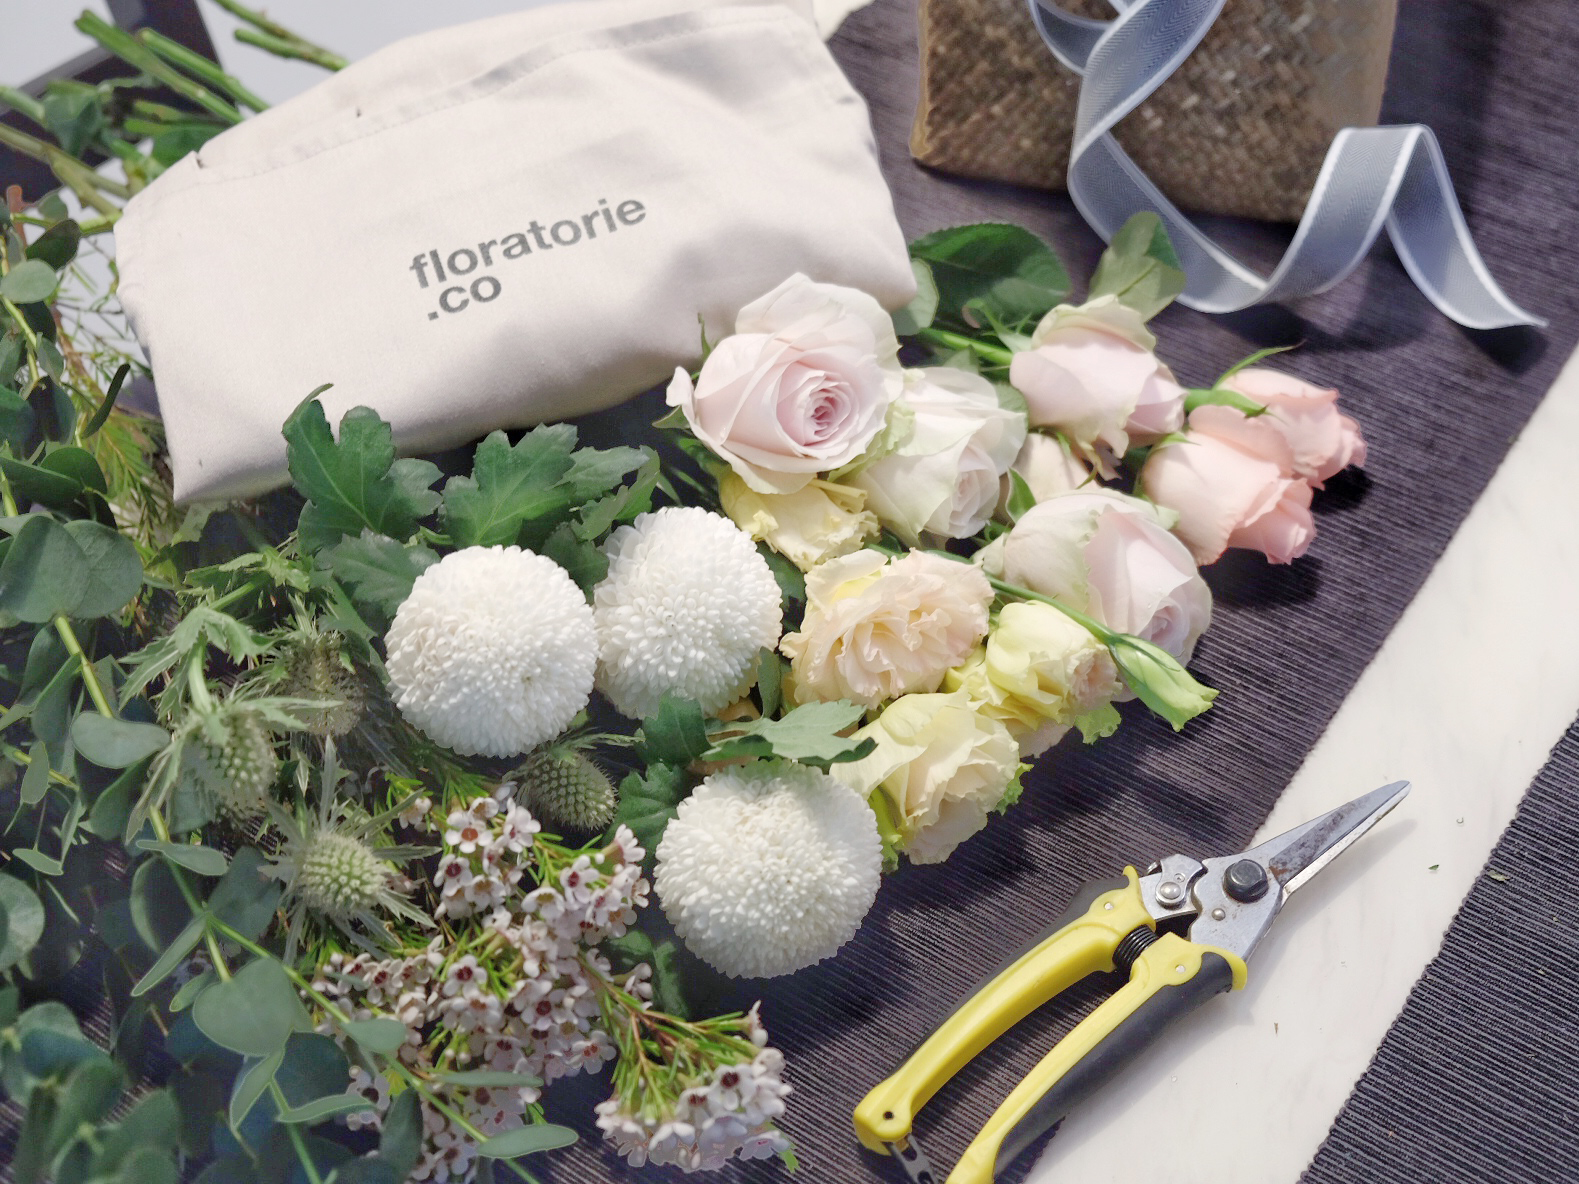 Floratorie - Singapore Online Florist | Flower Delivery | Flower Arrangment Workshop |